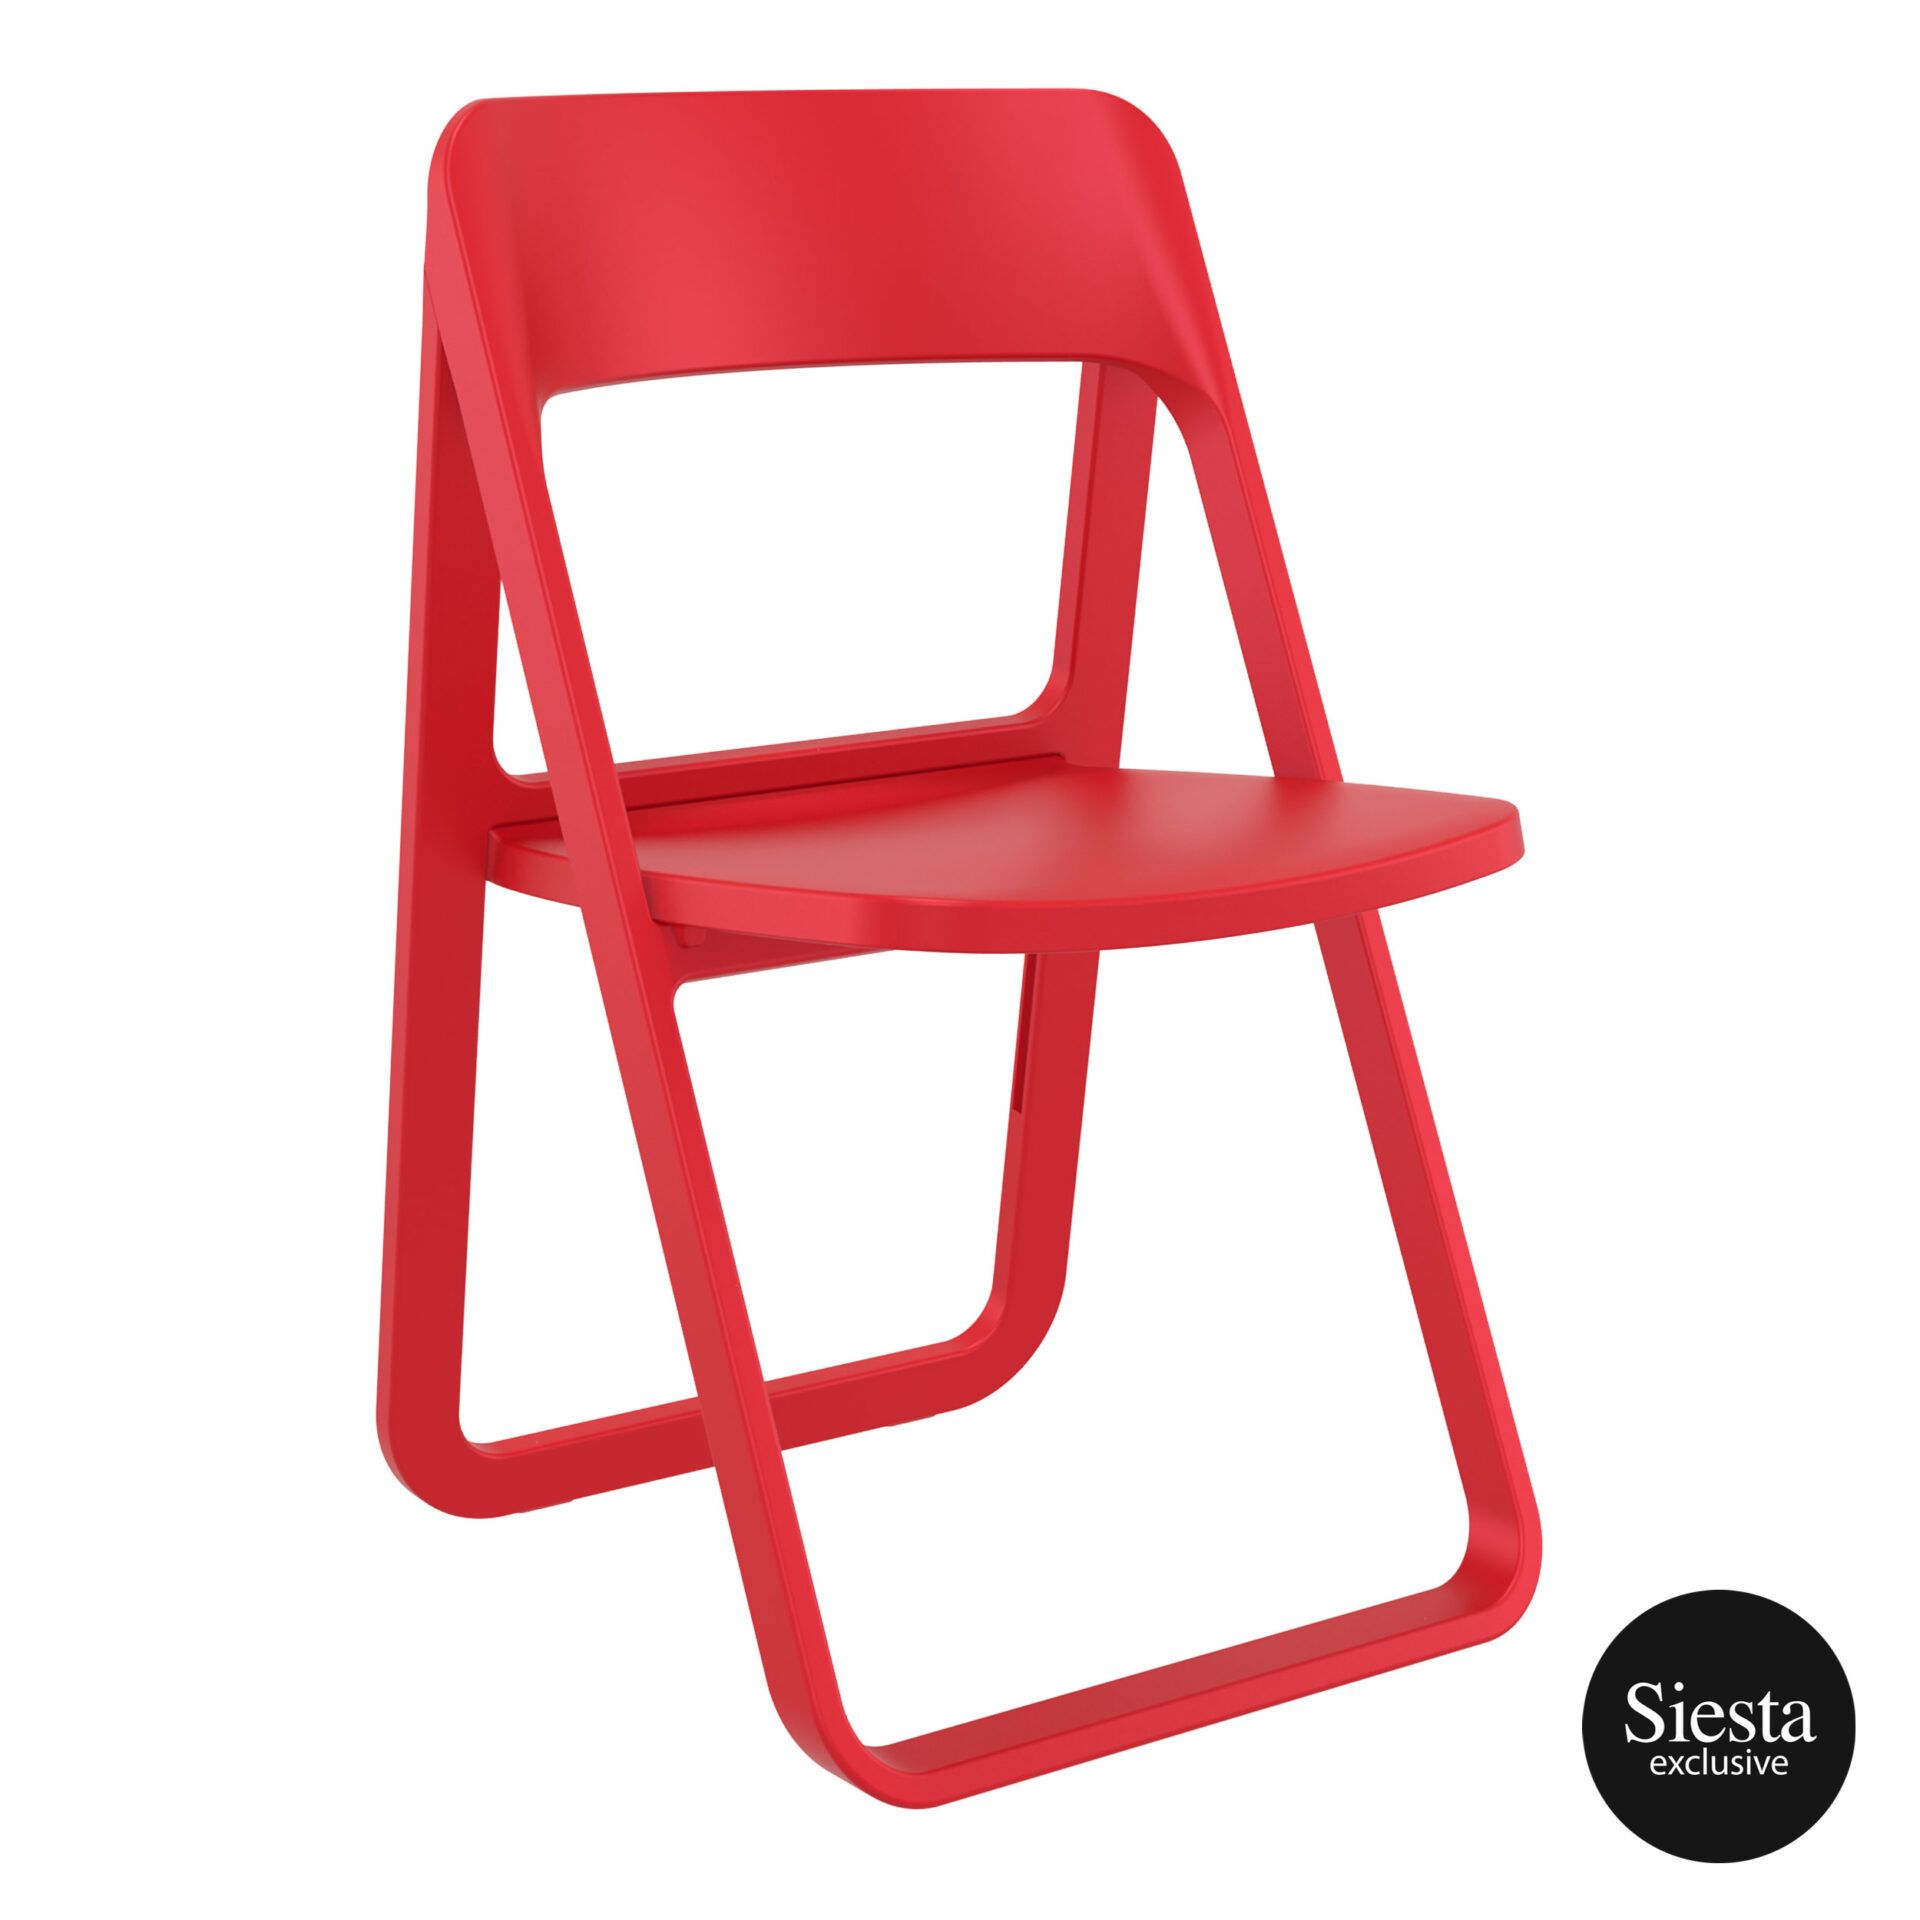 polypropylene dream folding chair red front side 1